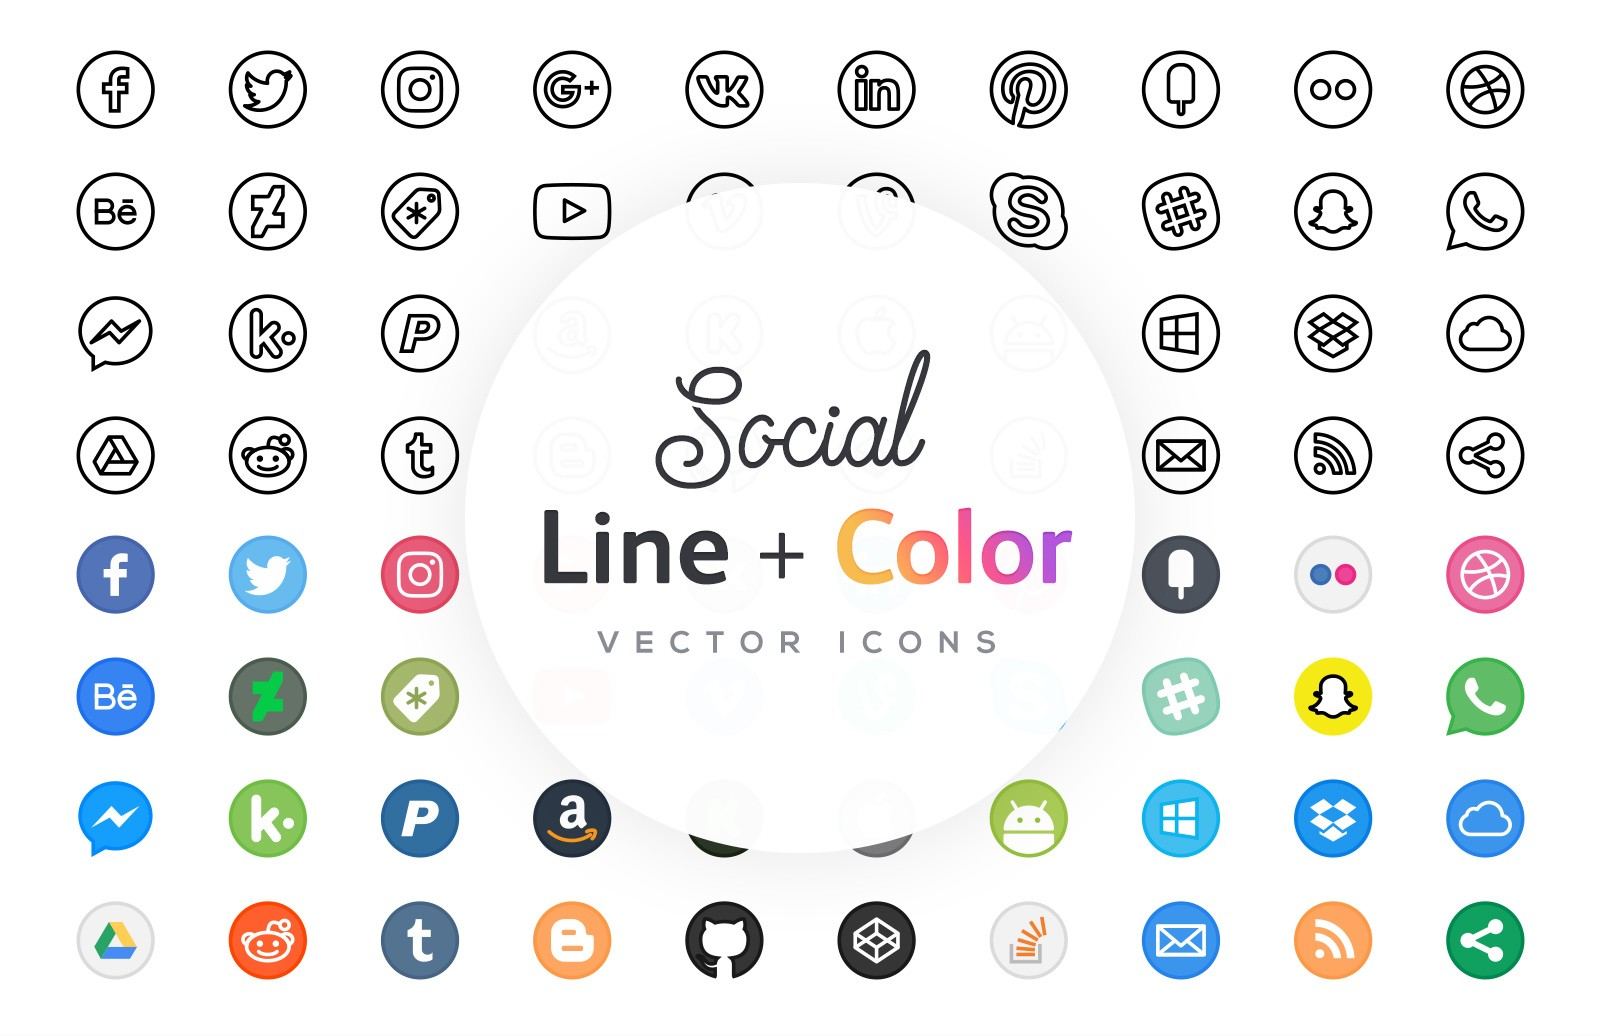 Line Icons Social Preview 1B